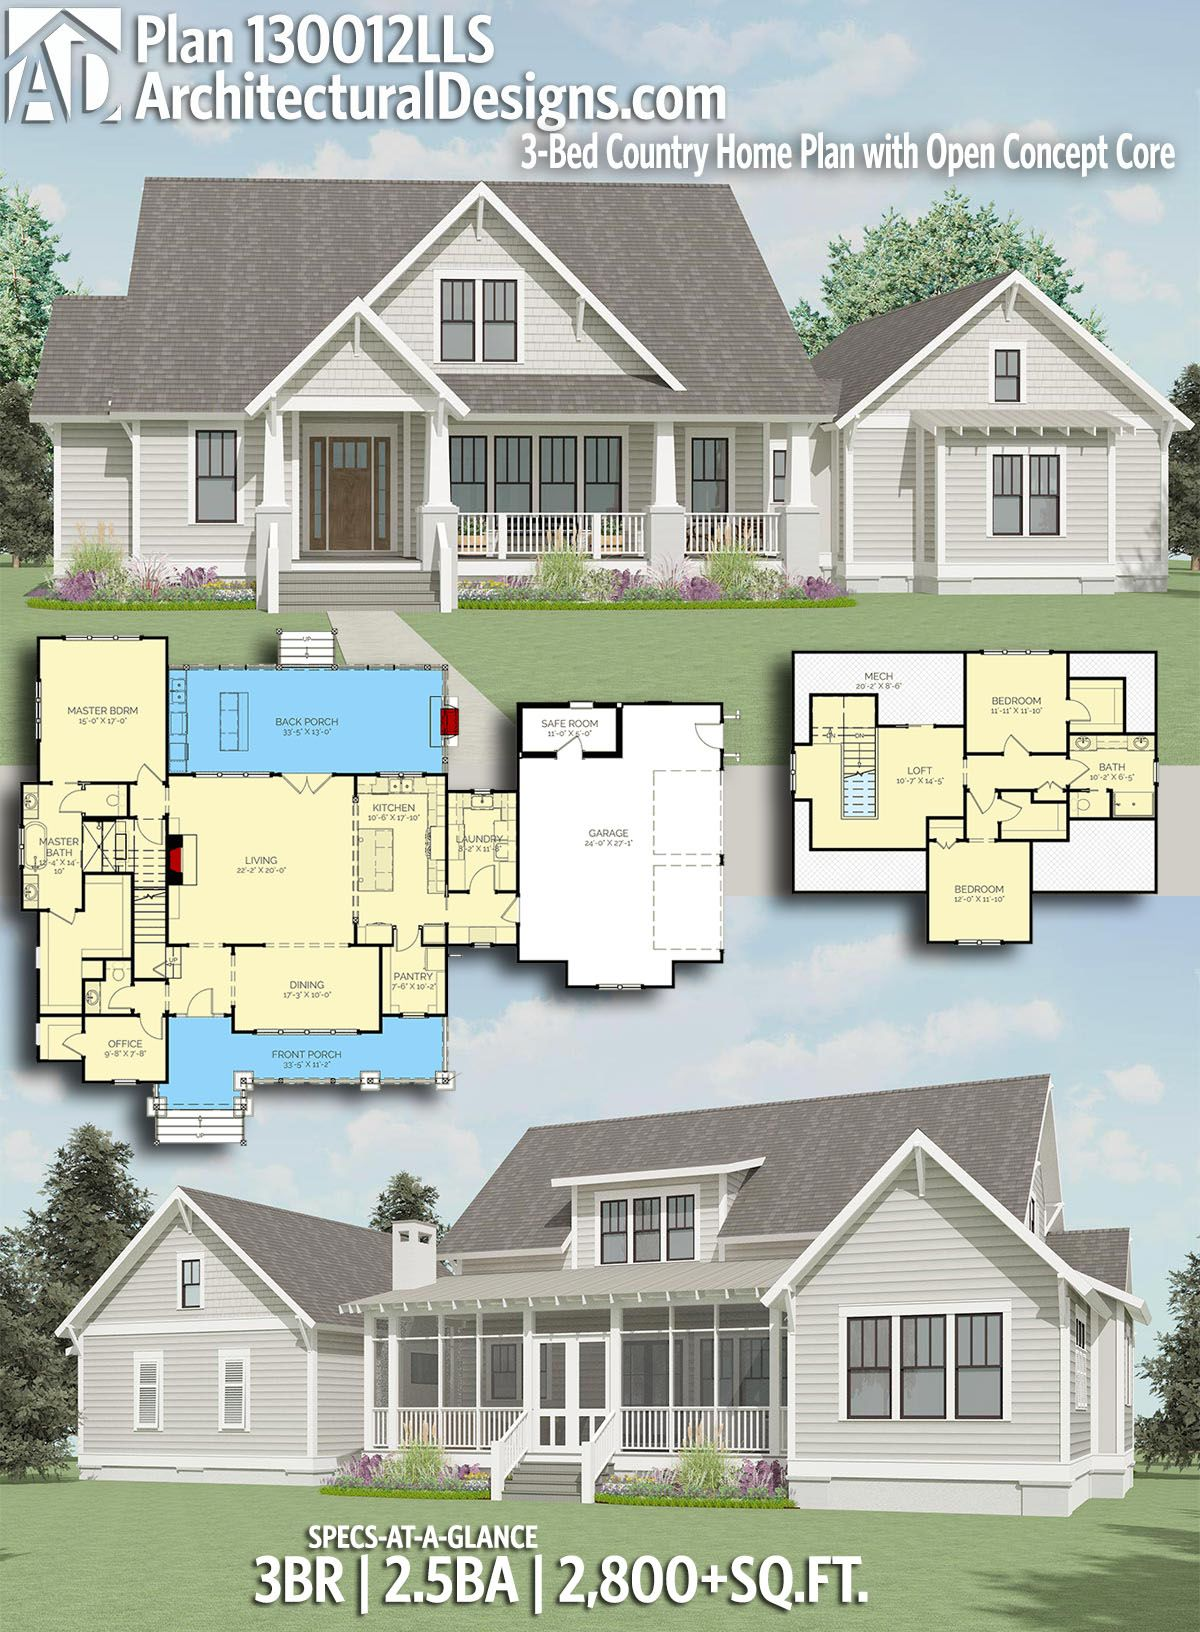 Plan lls bed country home plan with open concept core